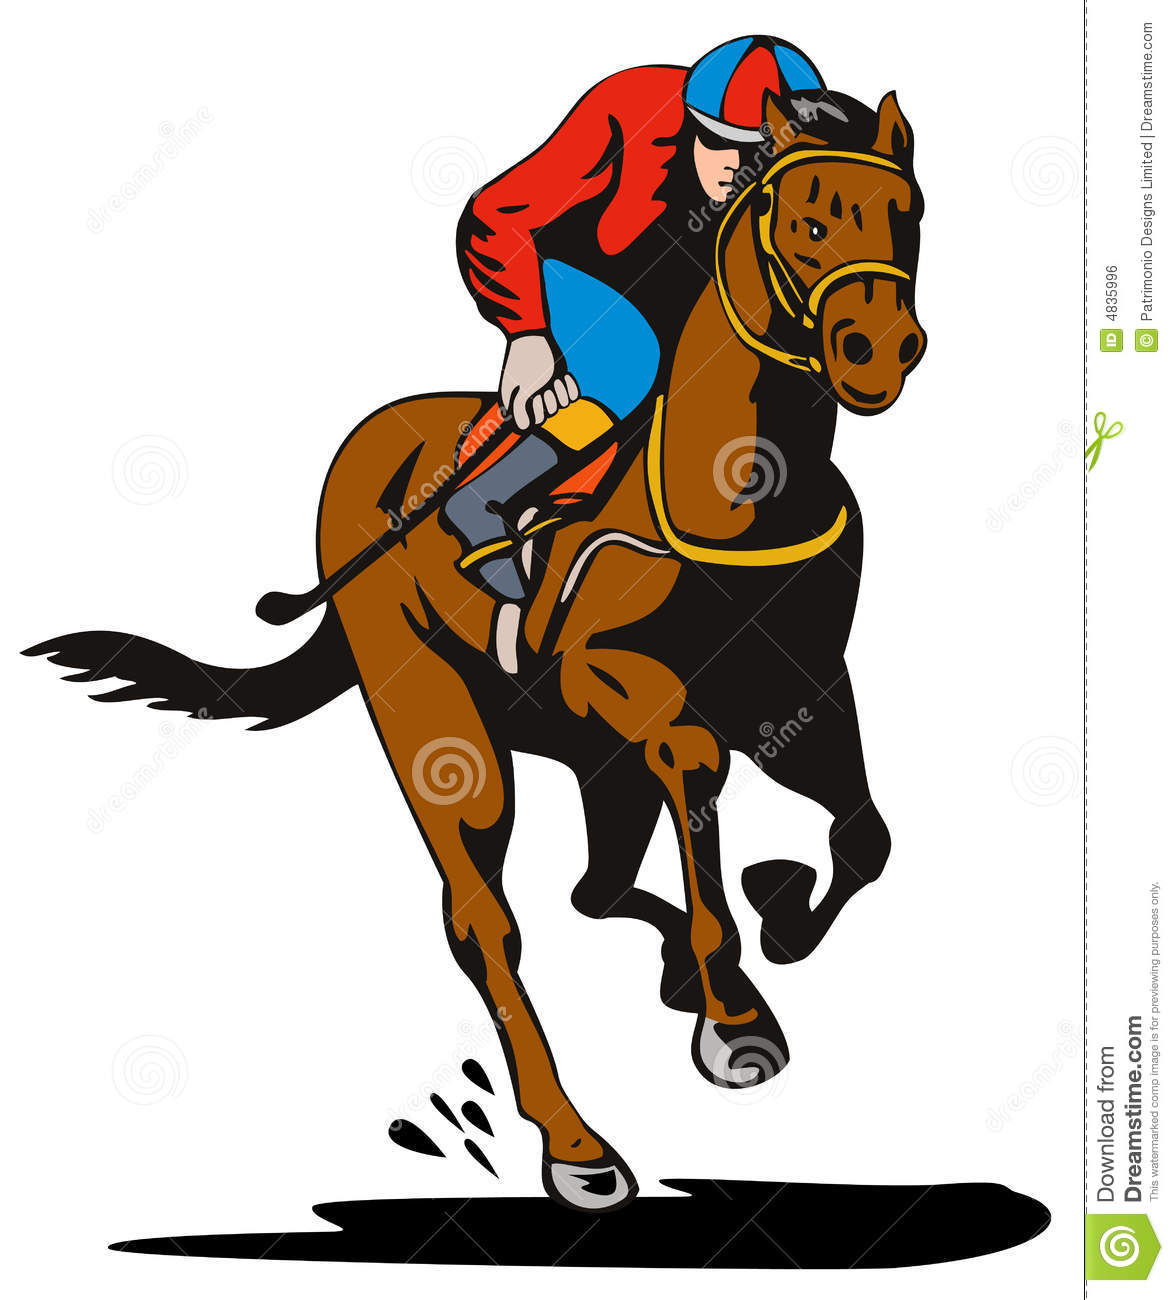 Horse Riding clipart horse jockey Seabiscuit Clipart horse Racing Truths